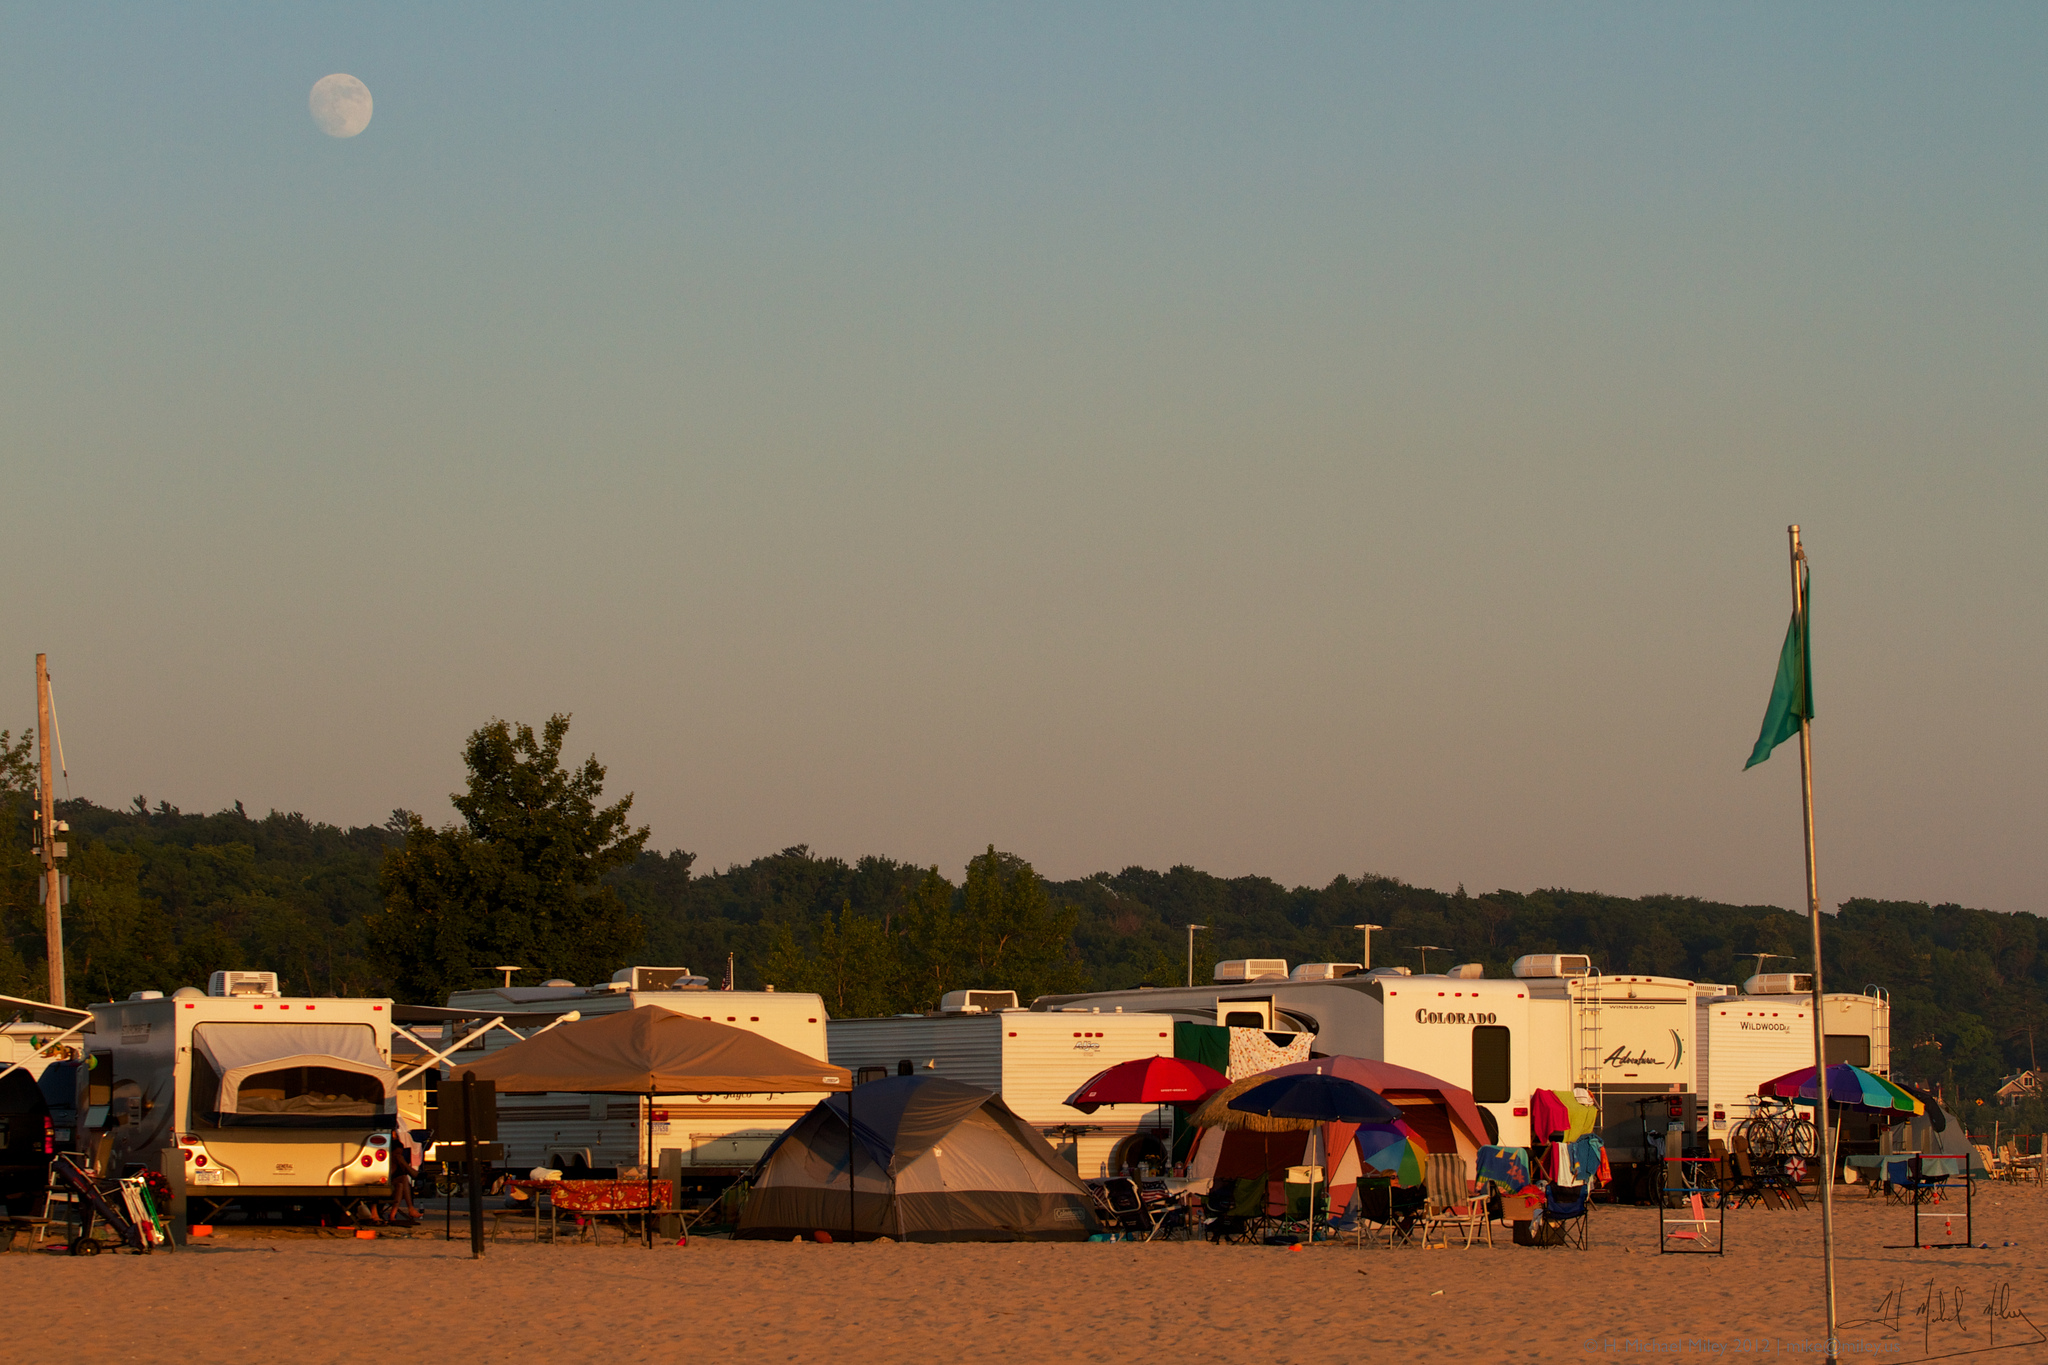 Grand Haven Campground for All Your Campground Needs: | | Grand Haven Campground